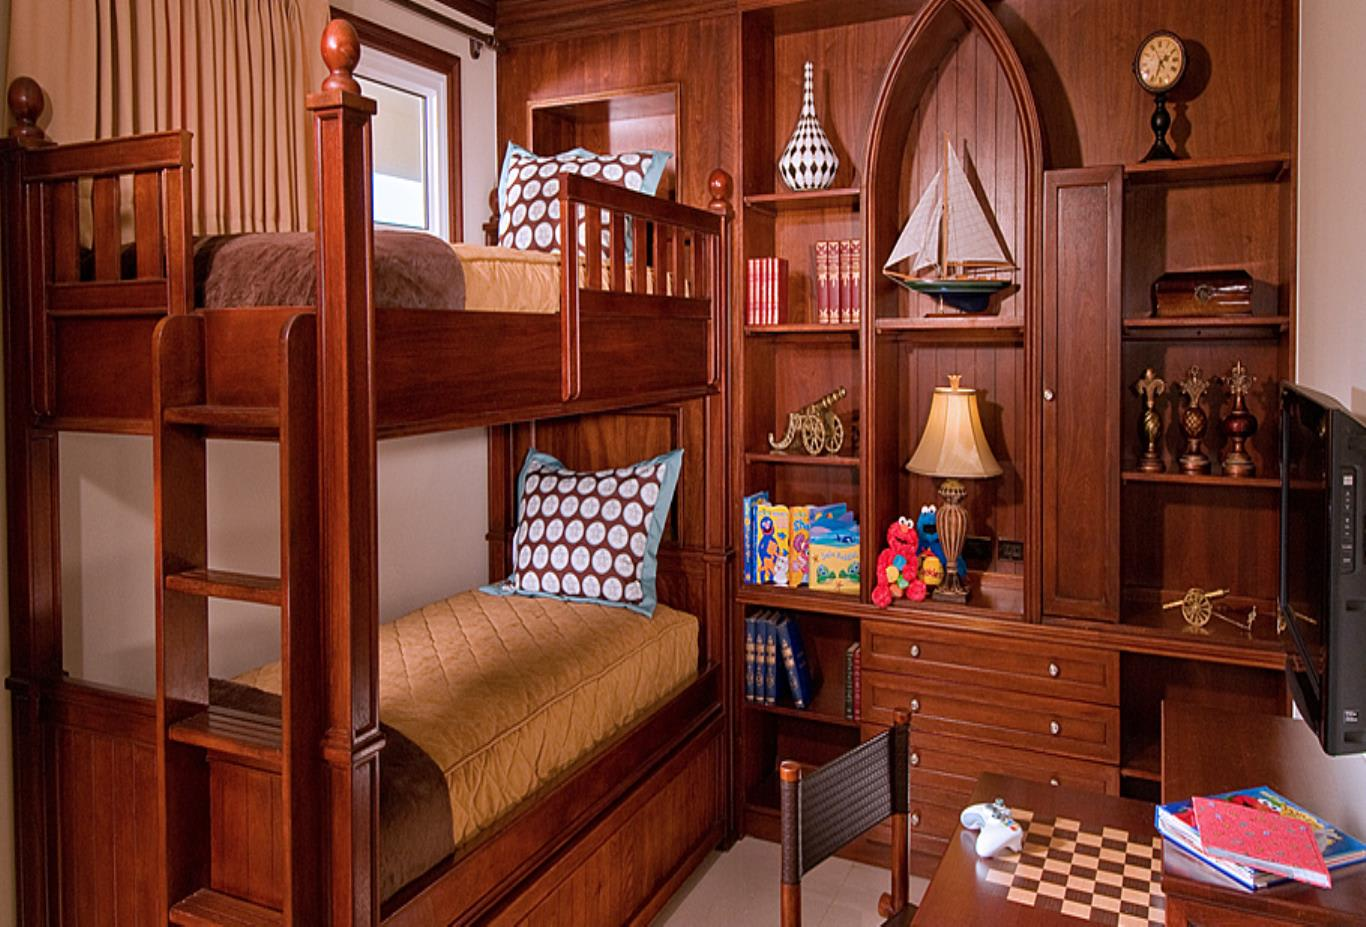 V2 kids' bedroom